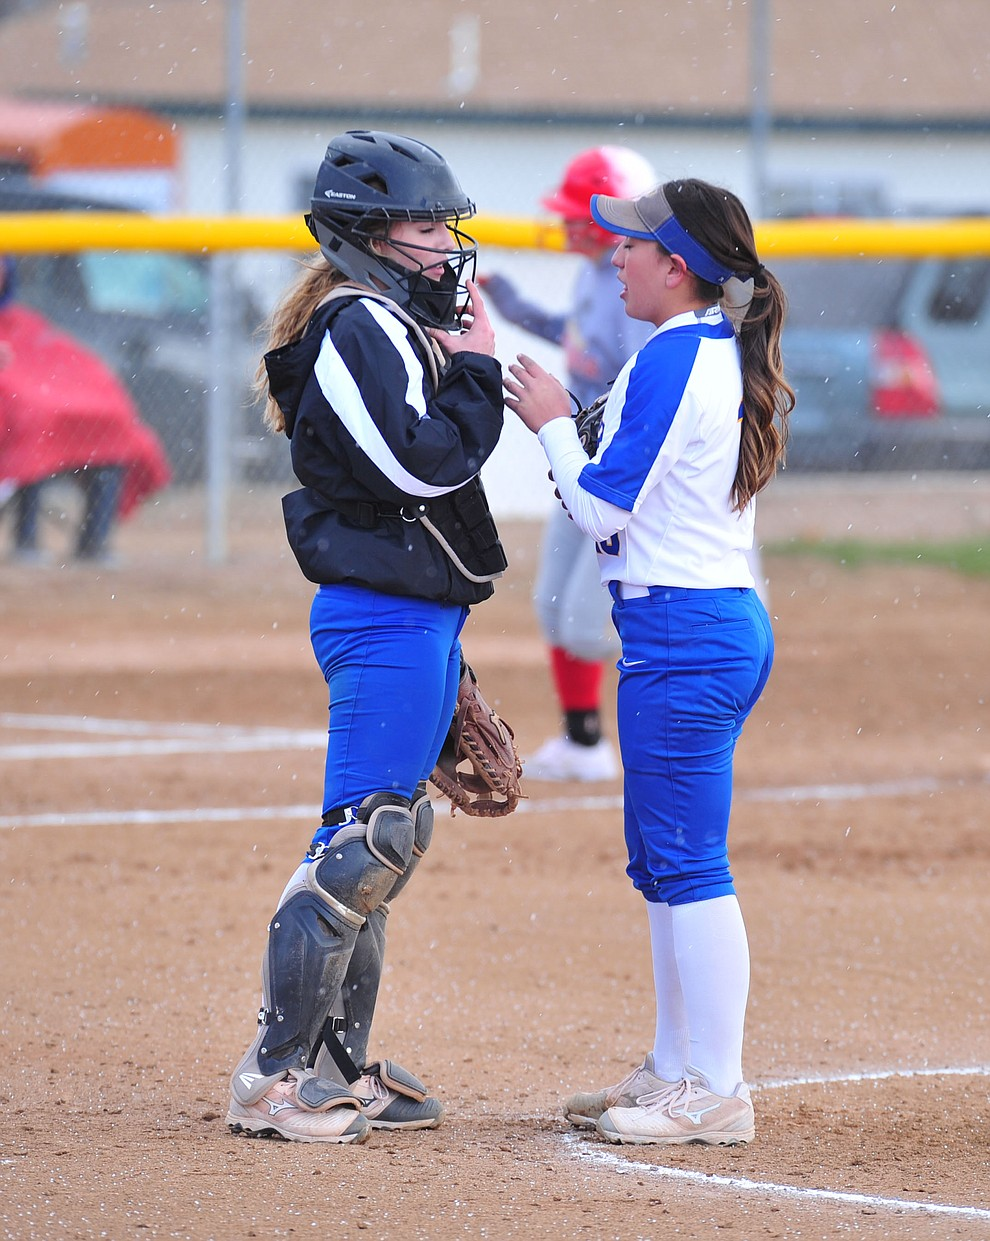 Prescott's Danner Cozens and Makayla Reyes talk on the mound after giving up a homer as the Badgers host Seton Catholic on a blustery day Friday, March 8, 2019. Les Stukenberg/Courier)